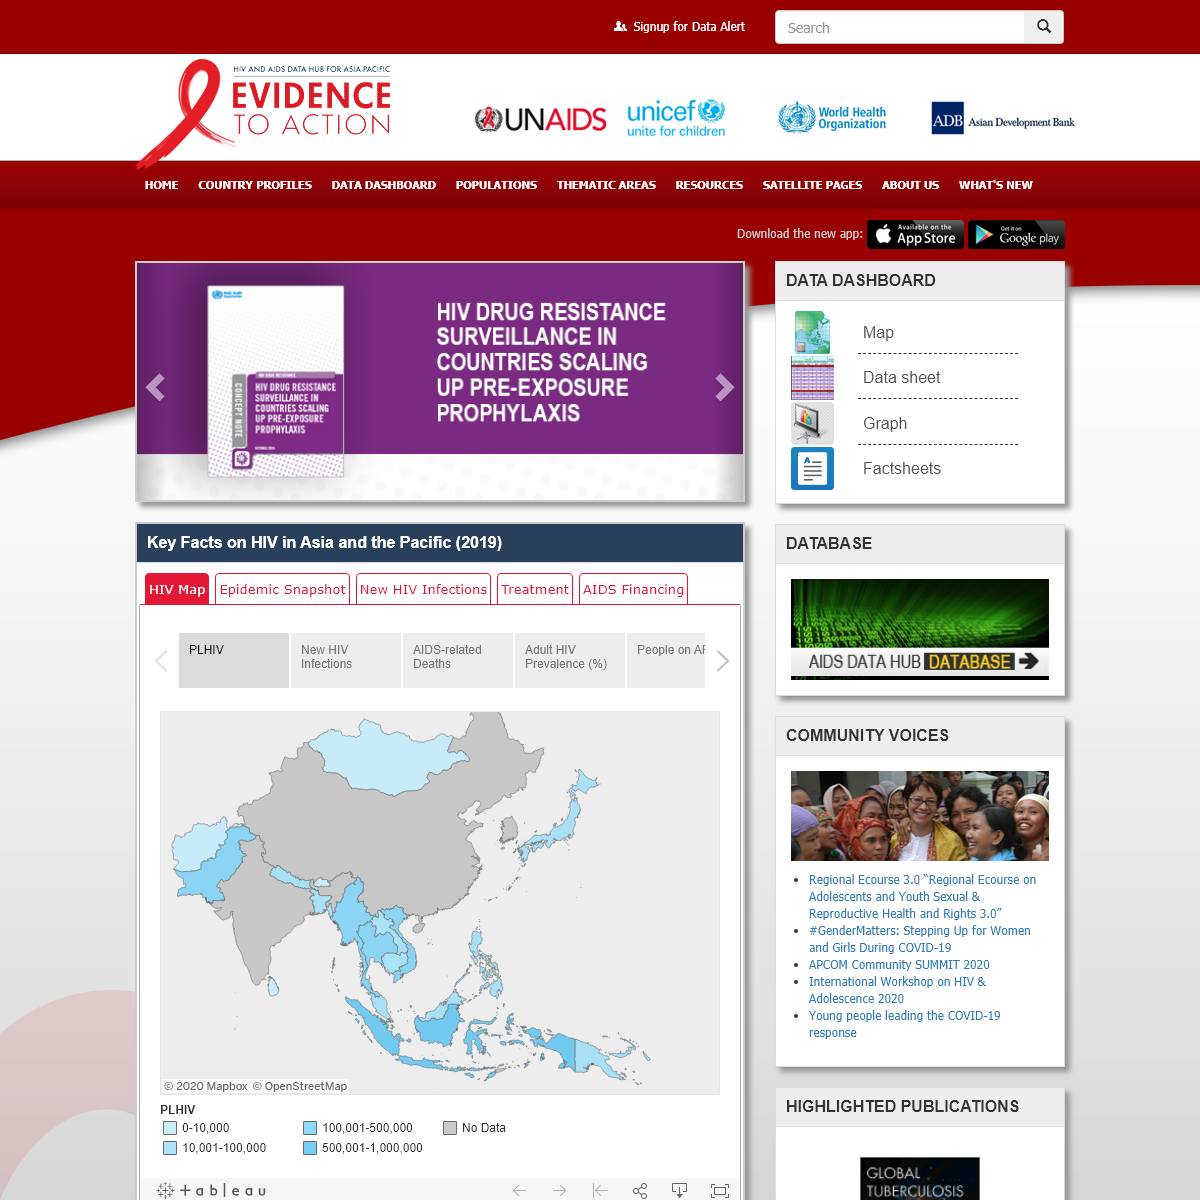 HIV-AIDS Data Hub for the Asia Pacific